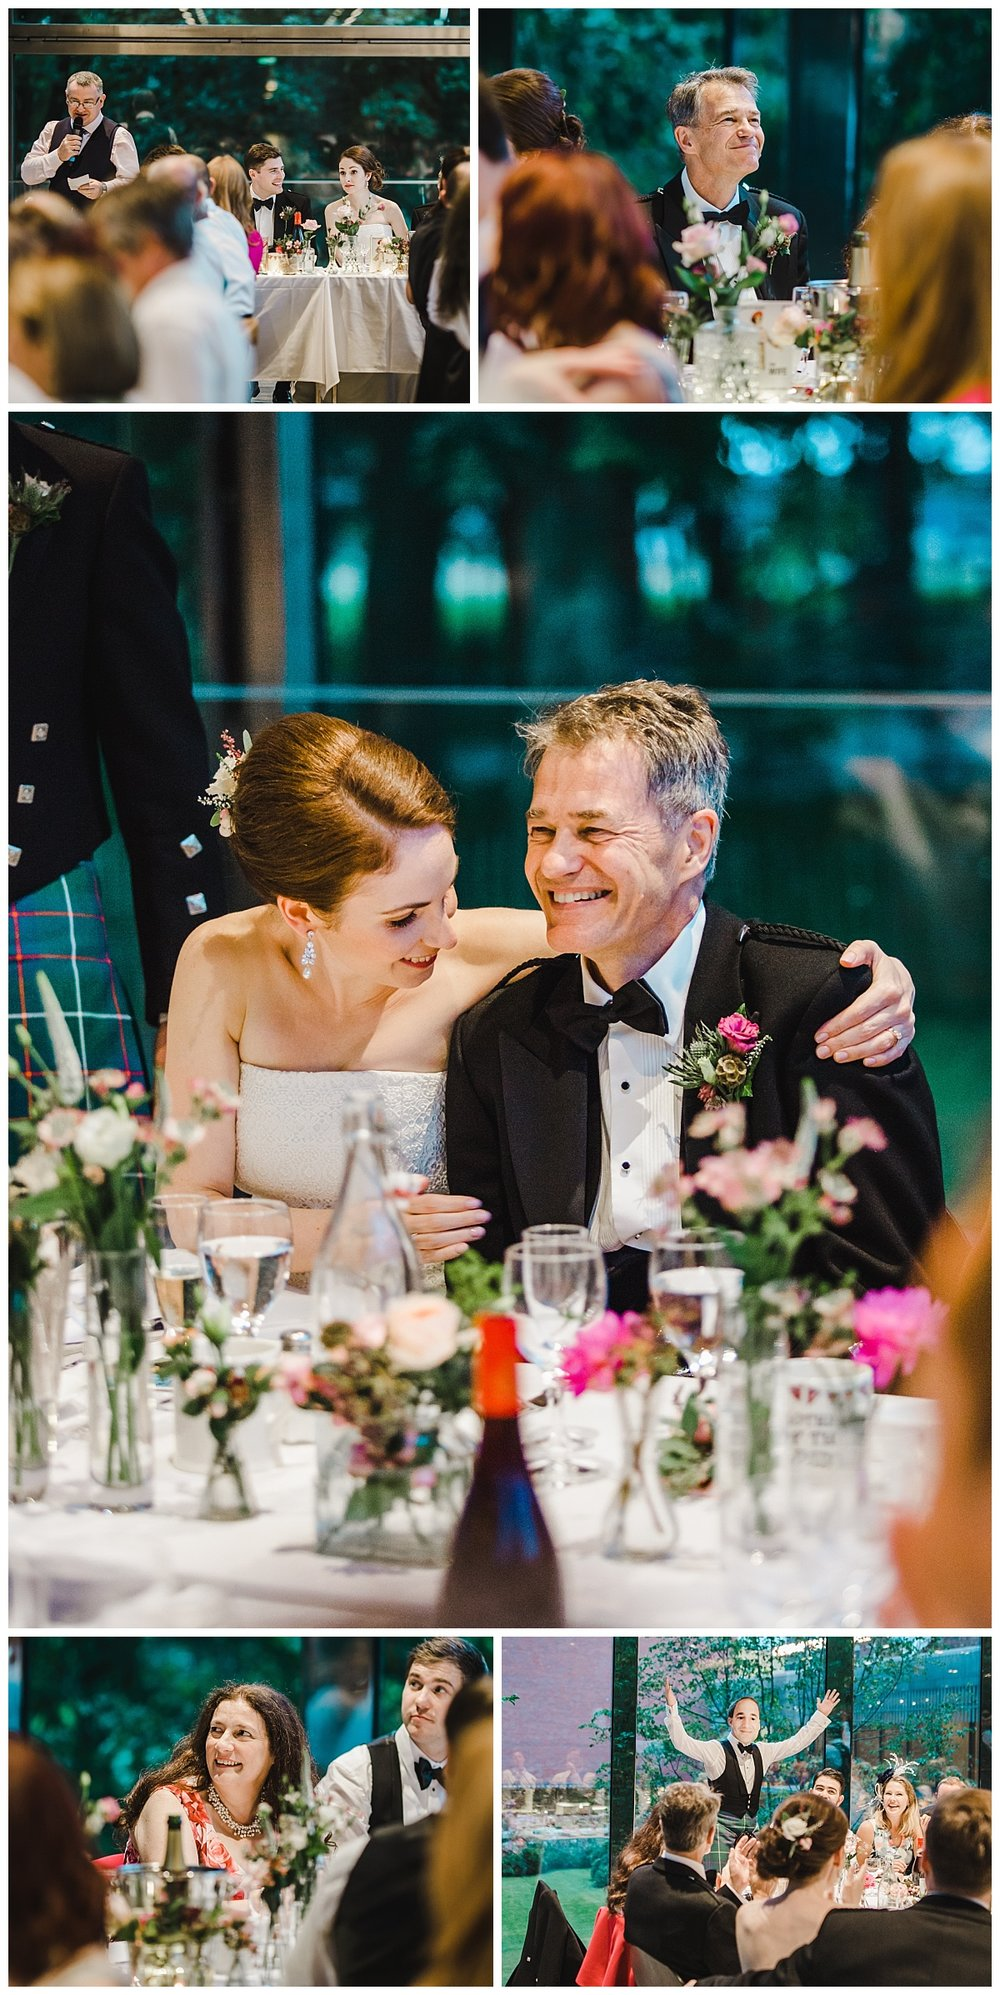 the wedding speeches at the Whitworth Art Gallery wedding venue